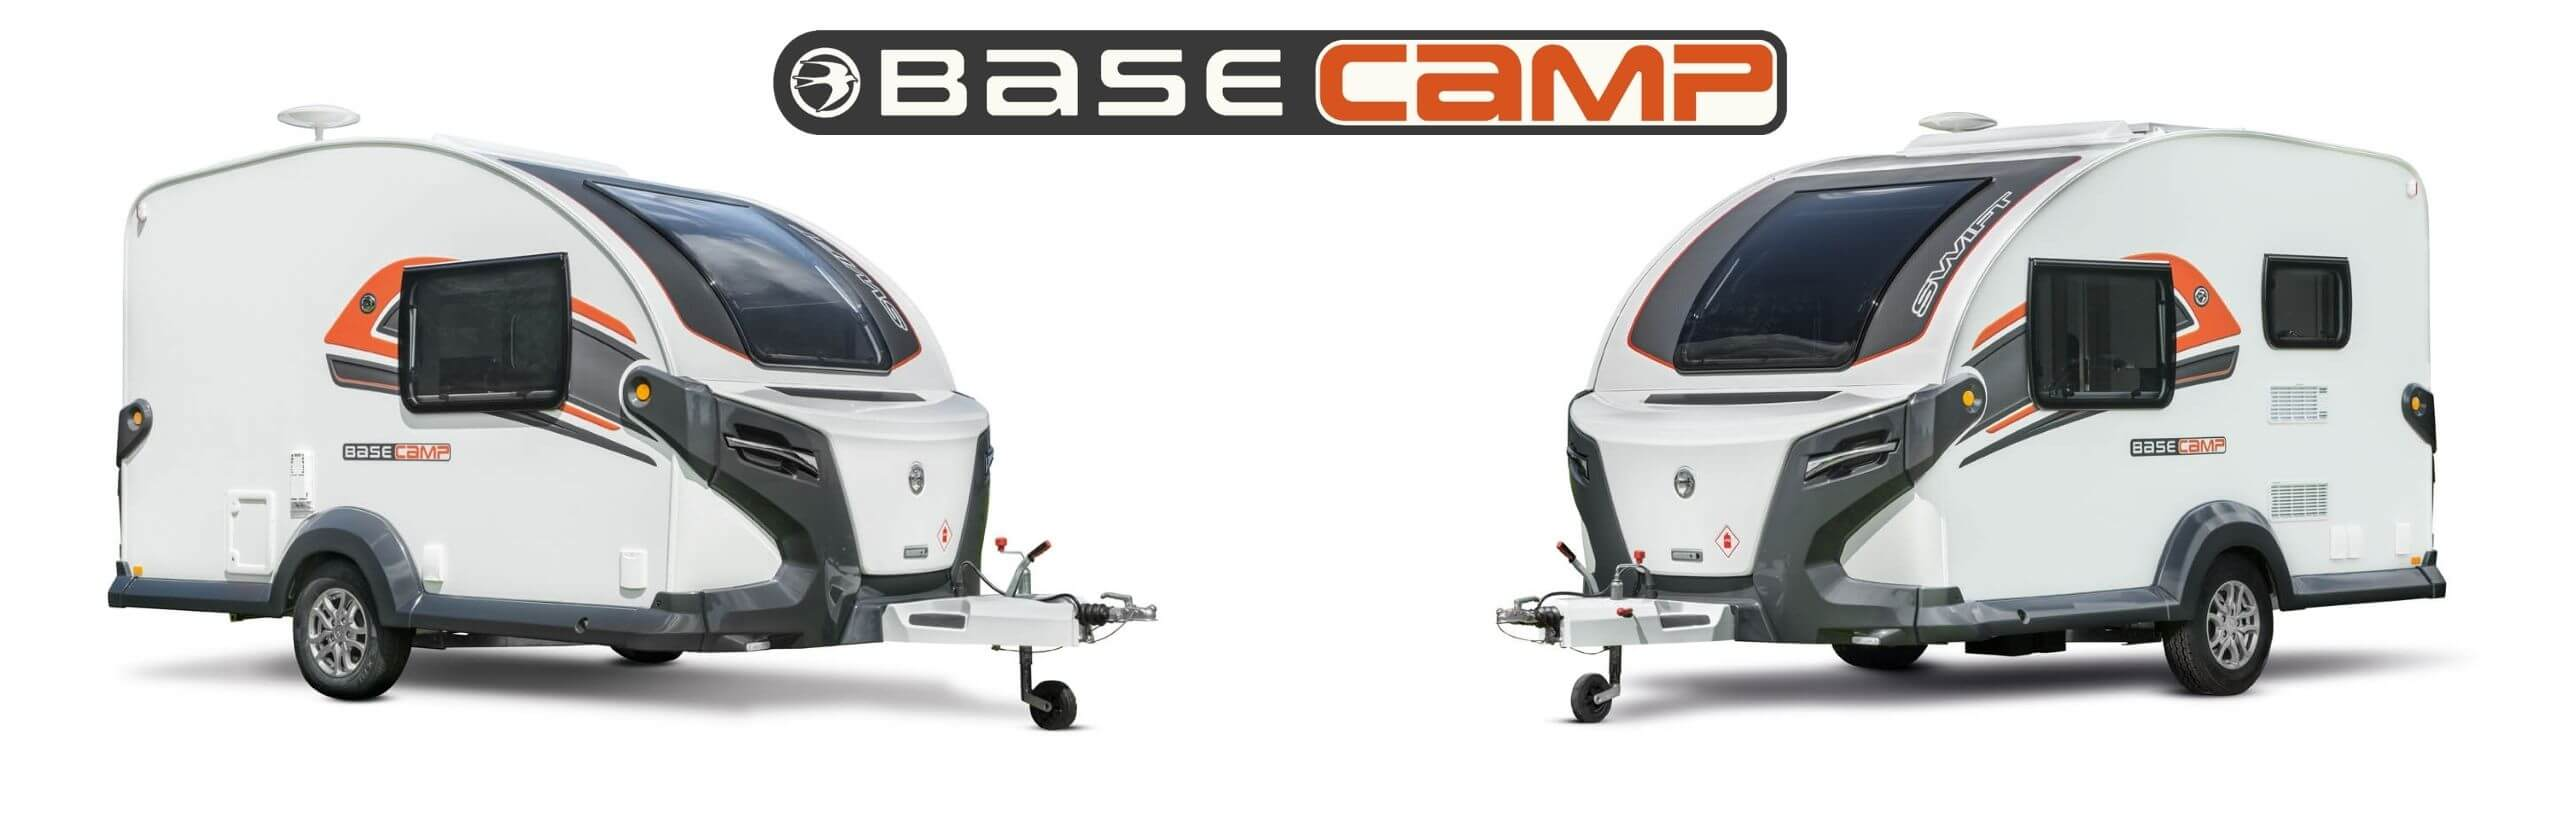 2022 Swift Basecamp: Image of the Basecamp's left and right side profiles.